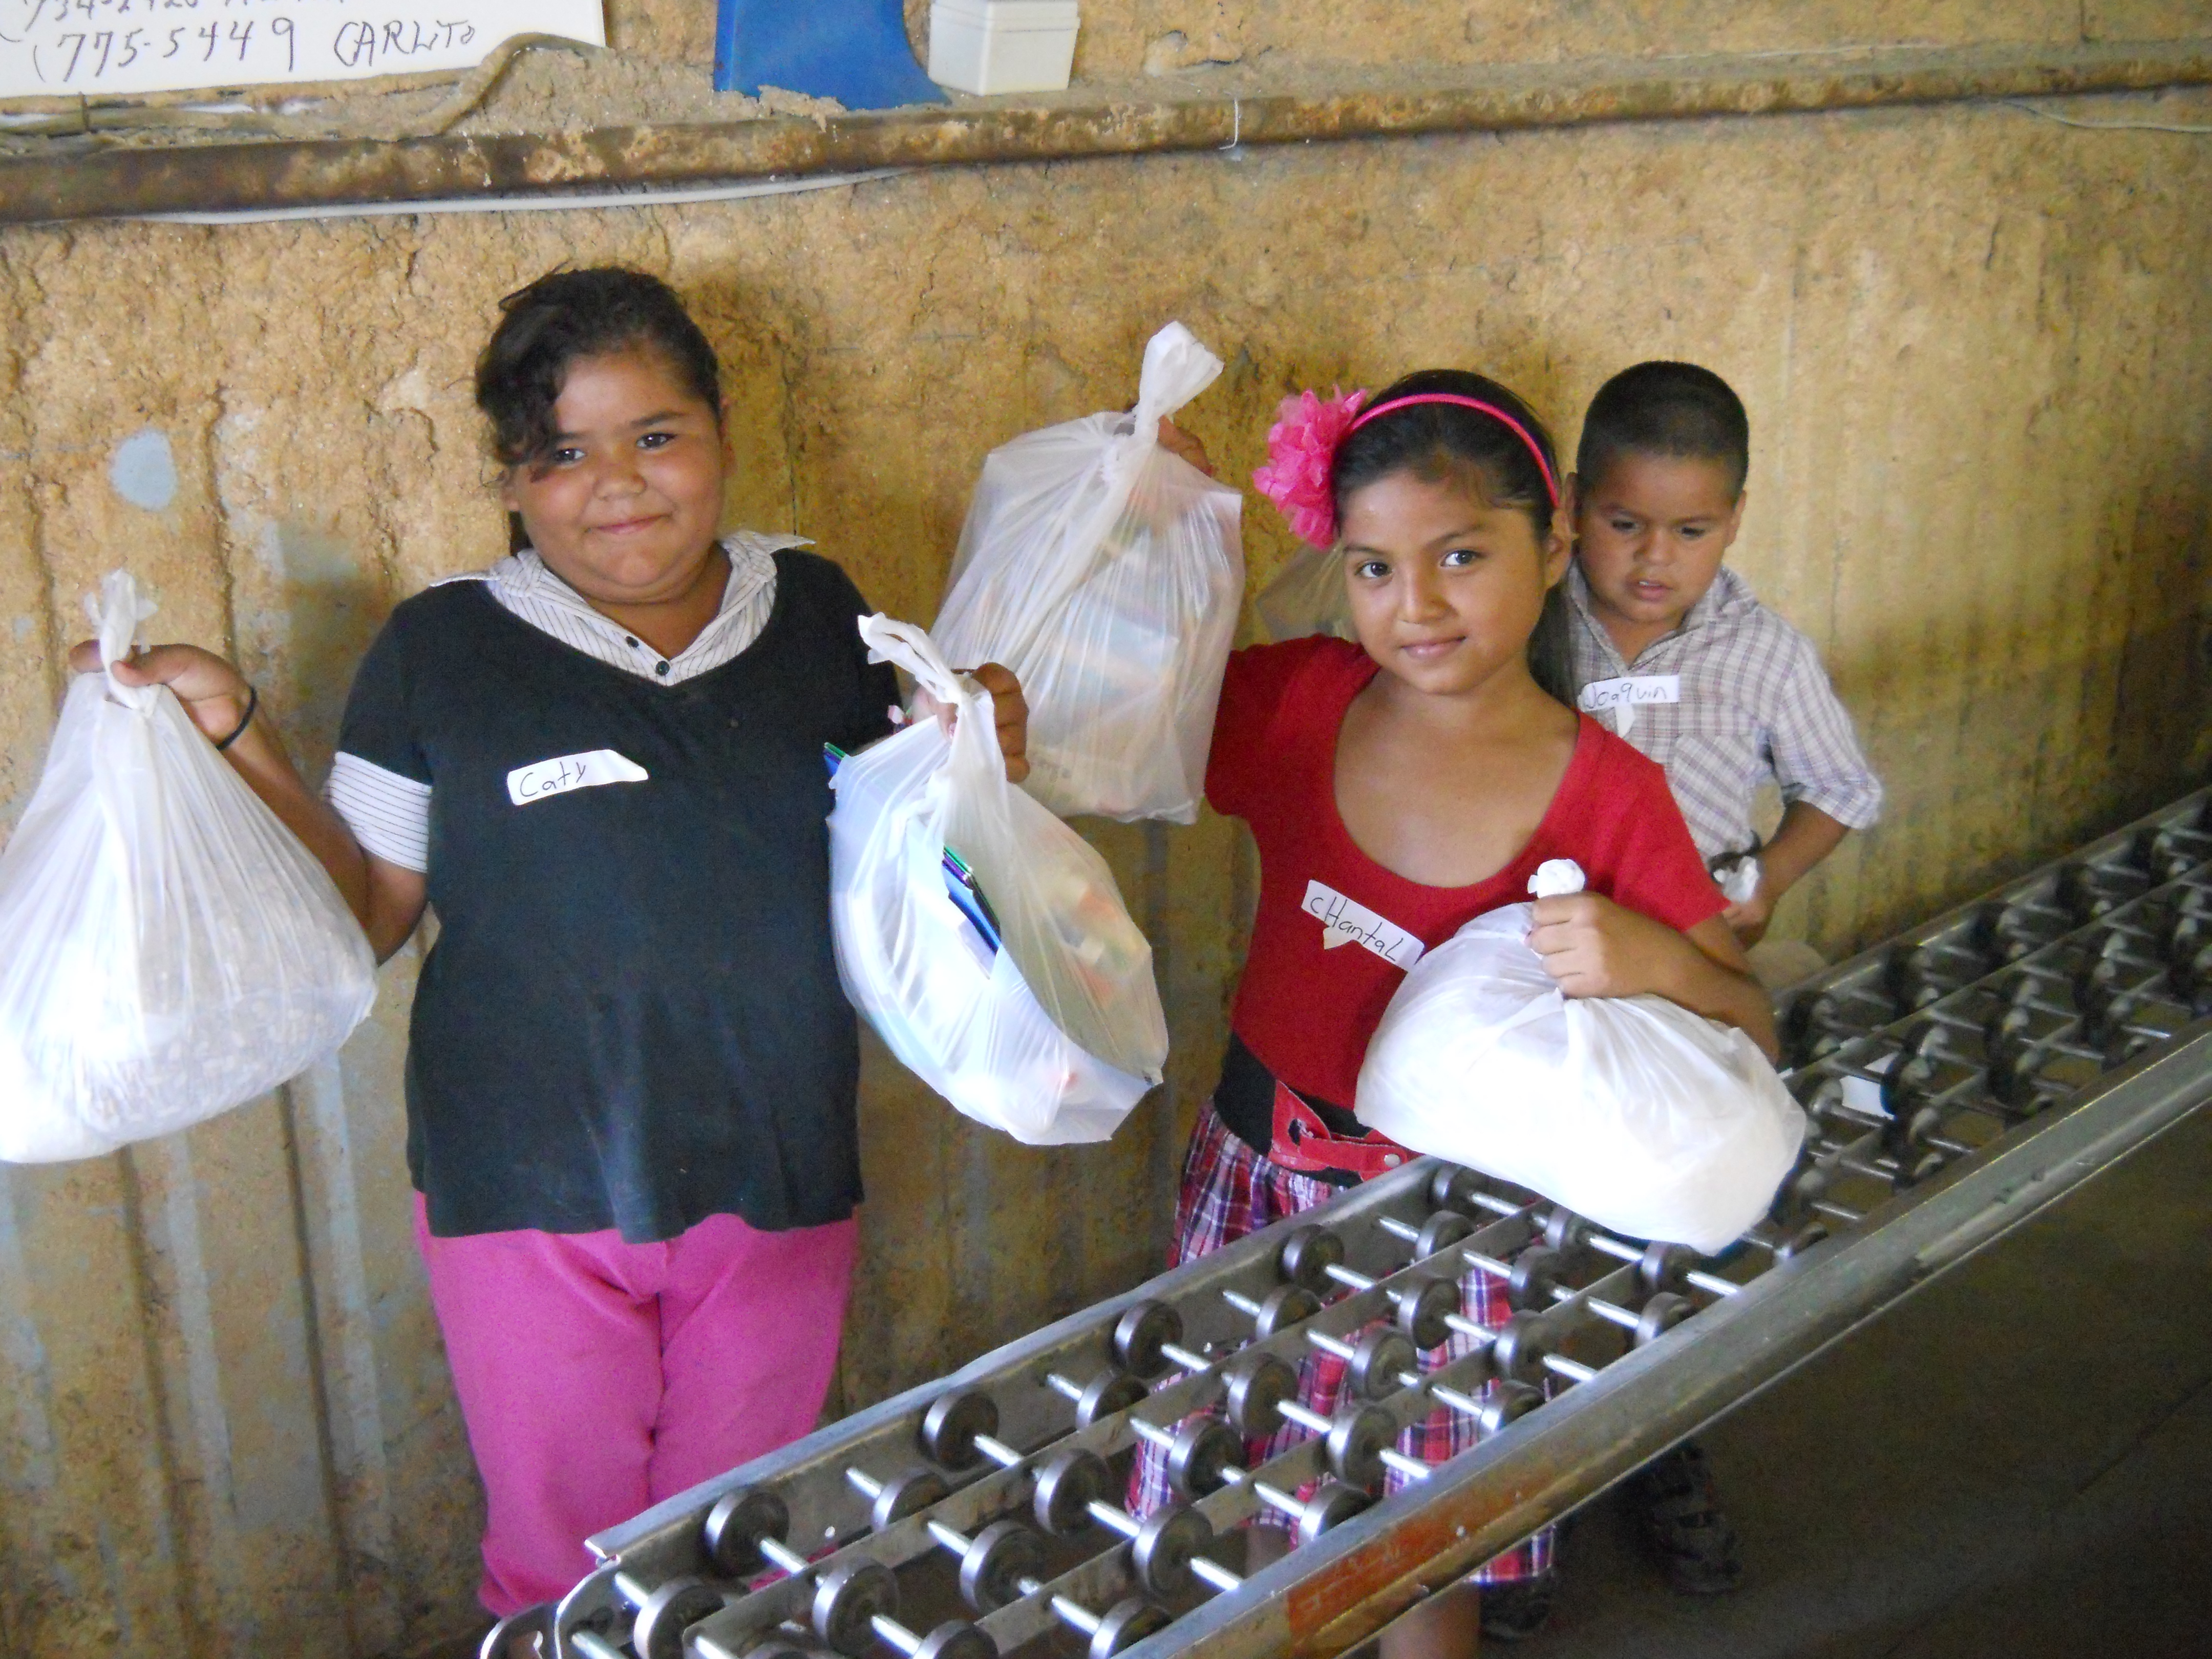 Life in Acuna Mexico